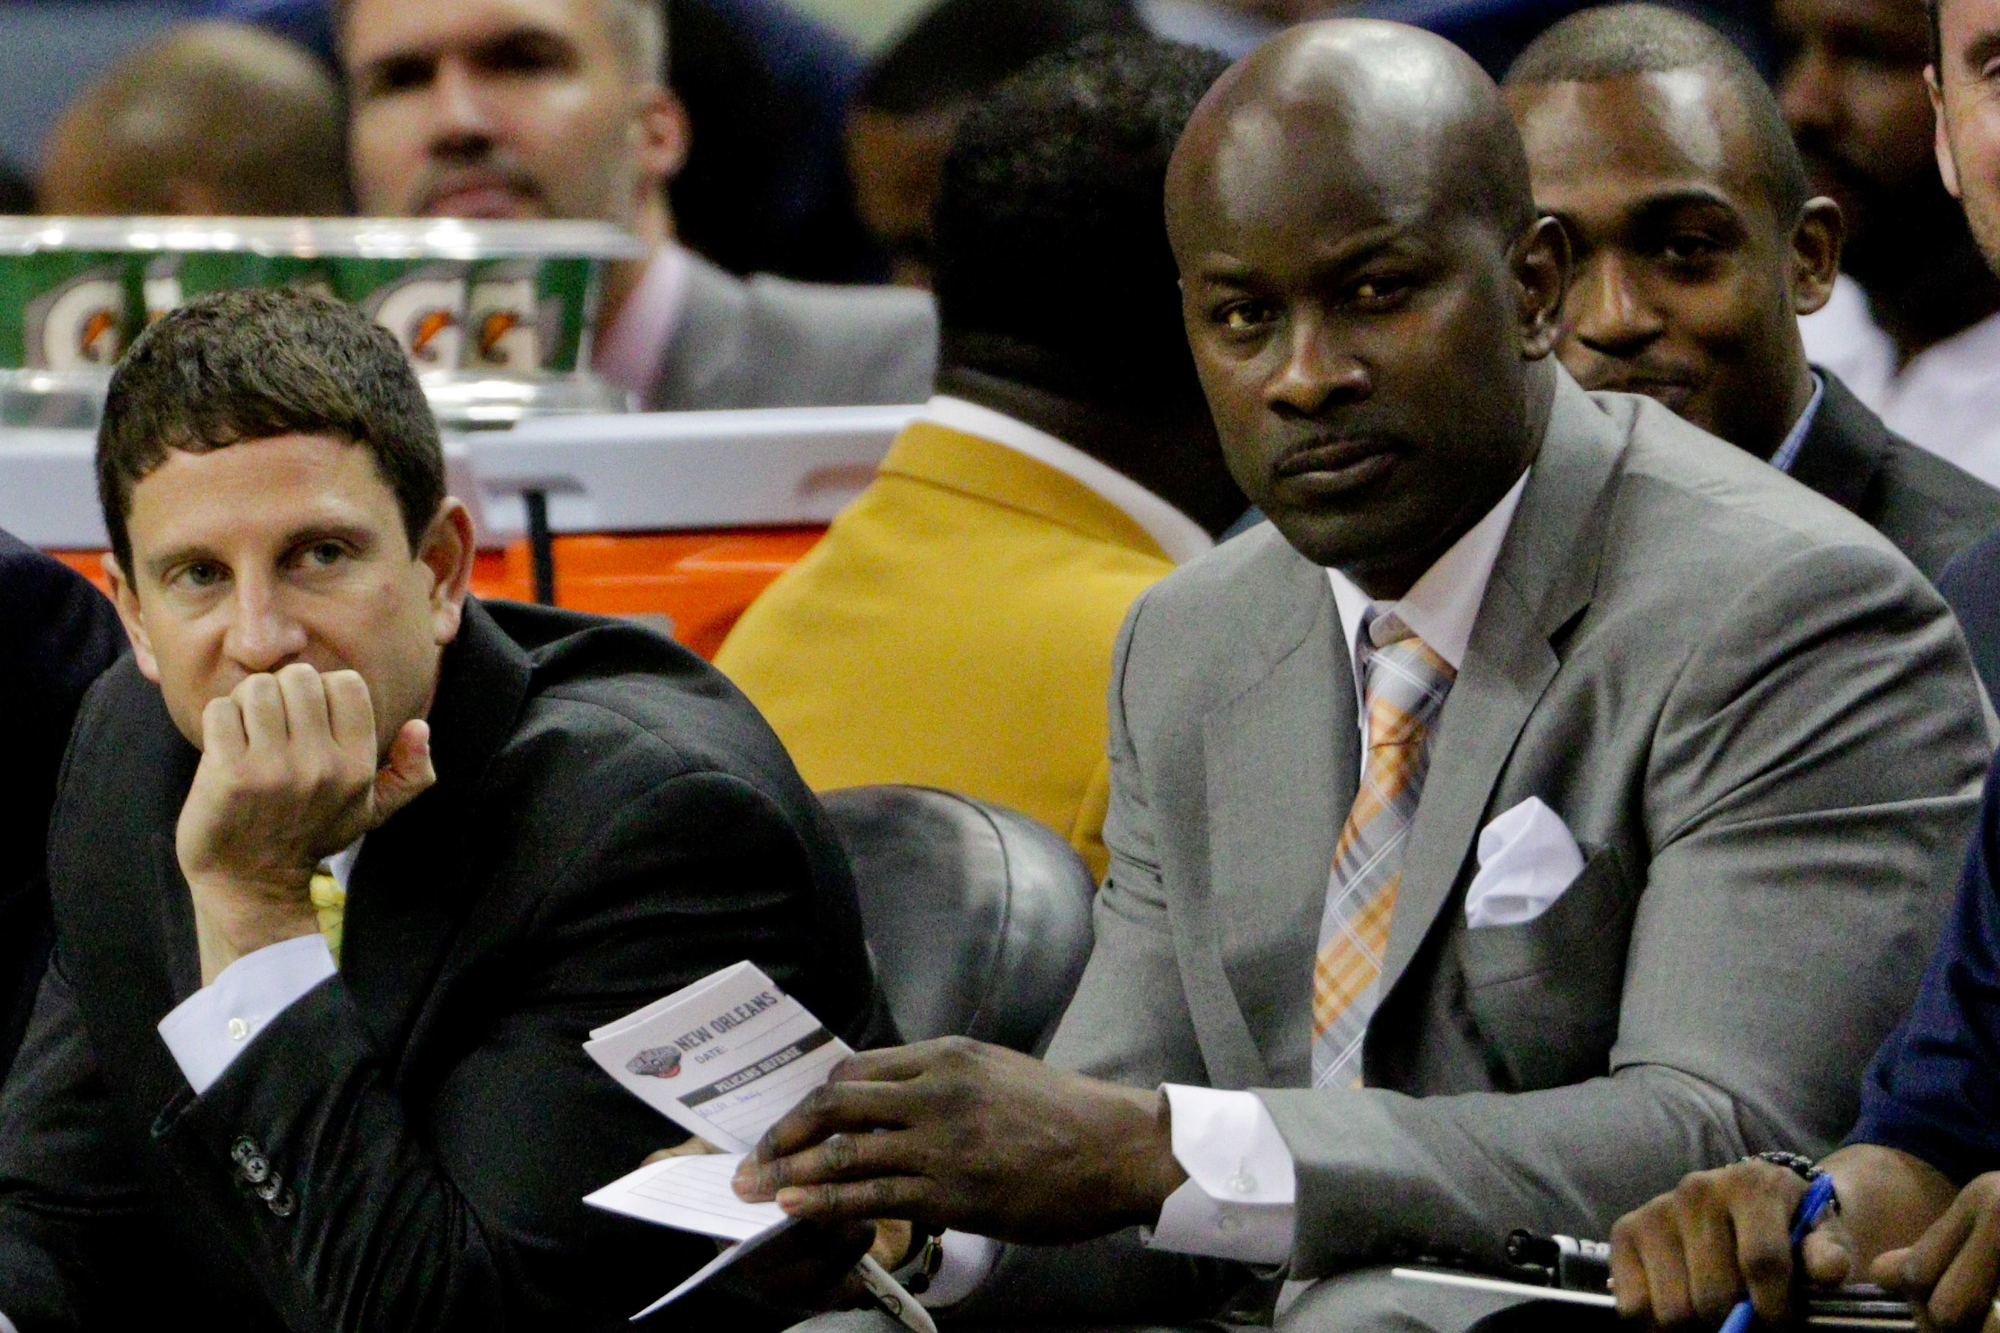 New Orleans Pelicans associate head coach Darren Erman (left) and assistant coach Robert Pack (right) during the first half of a game against the Miami Heat at the Smoothie King Center.